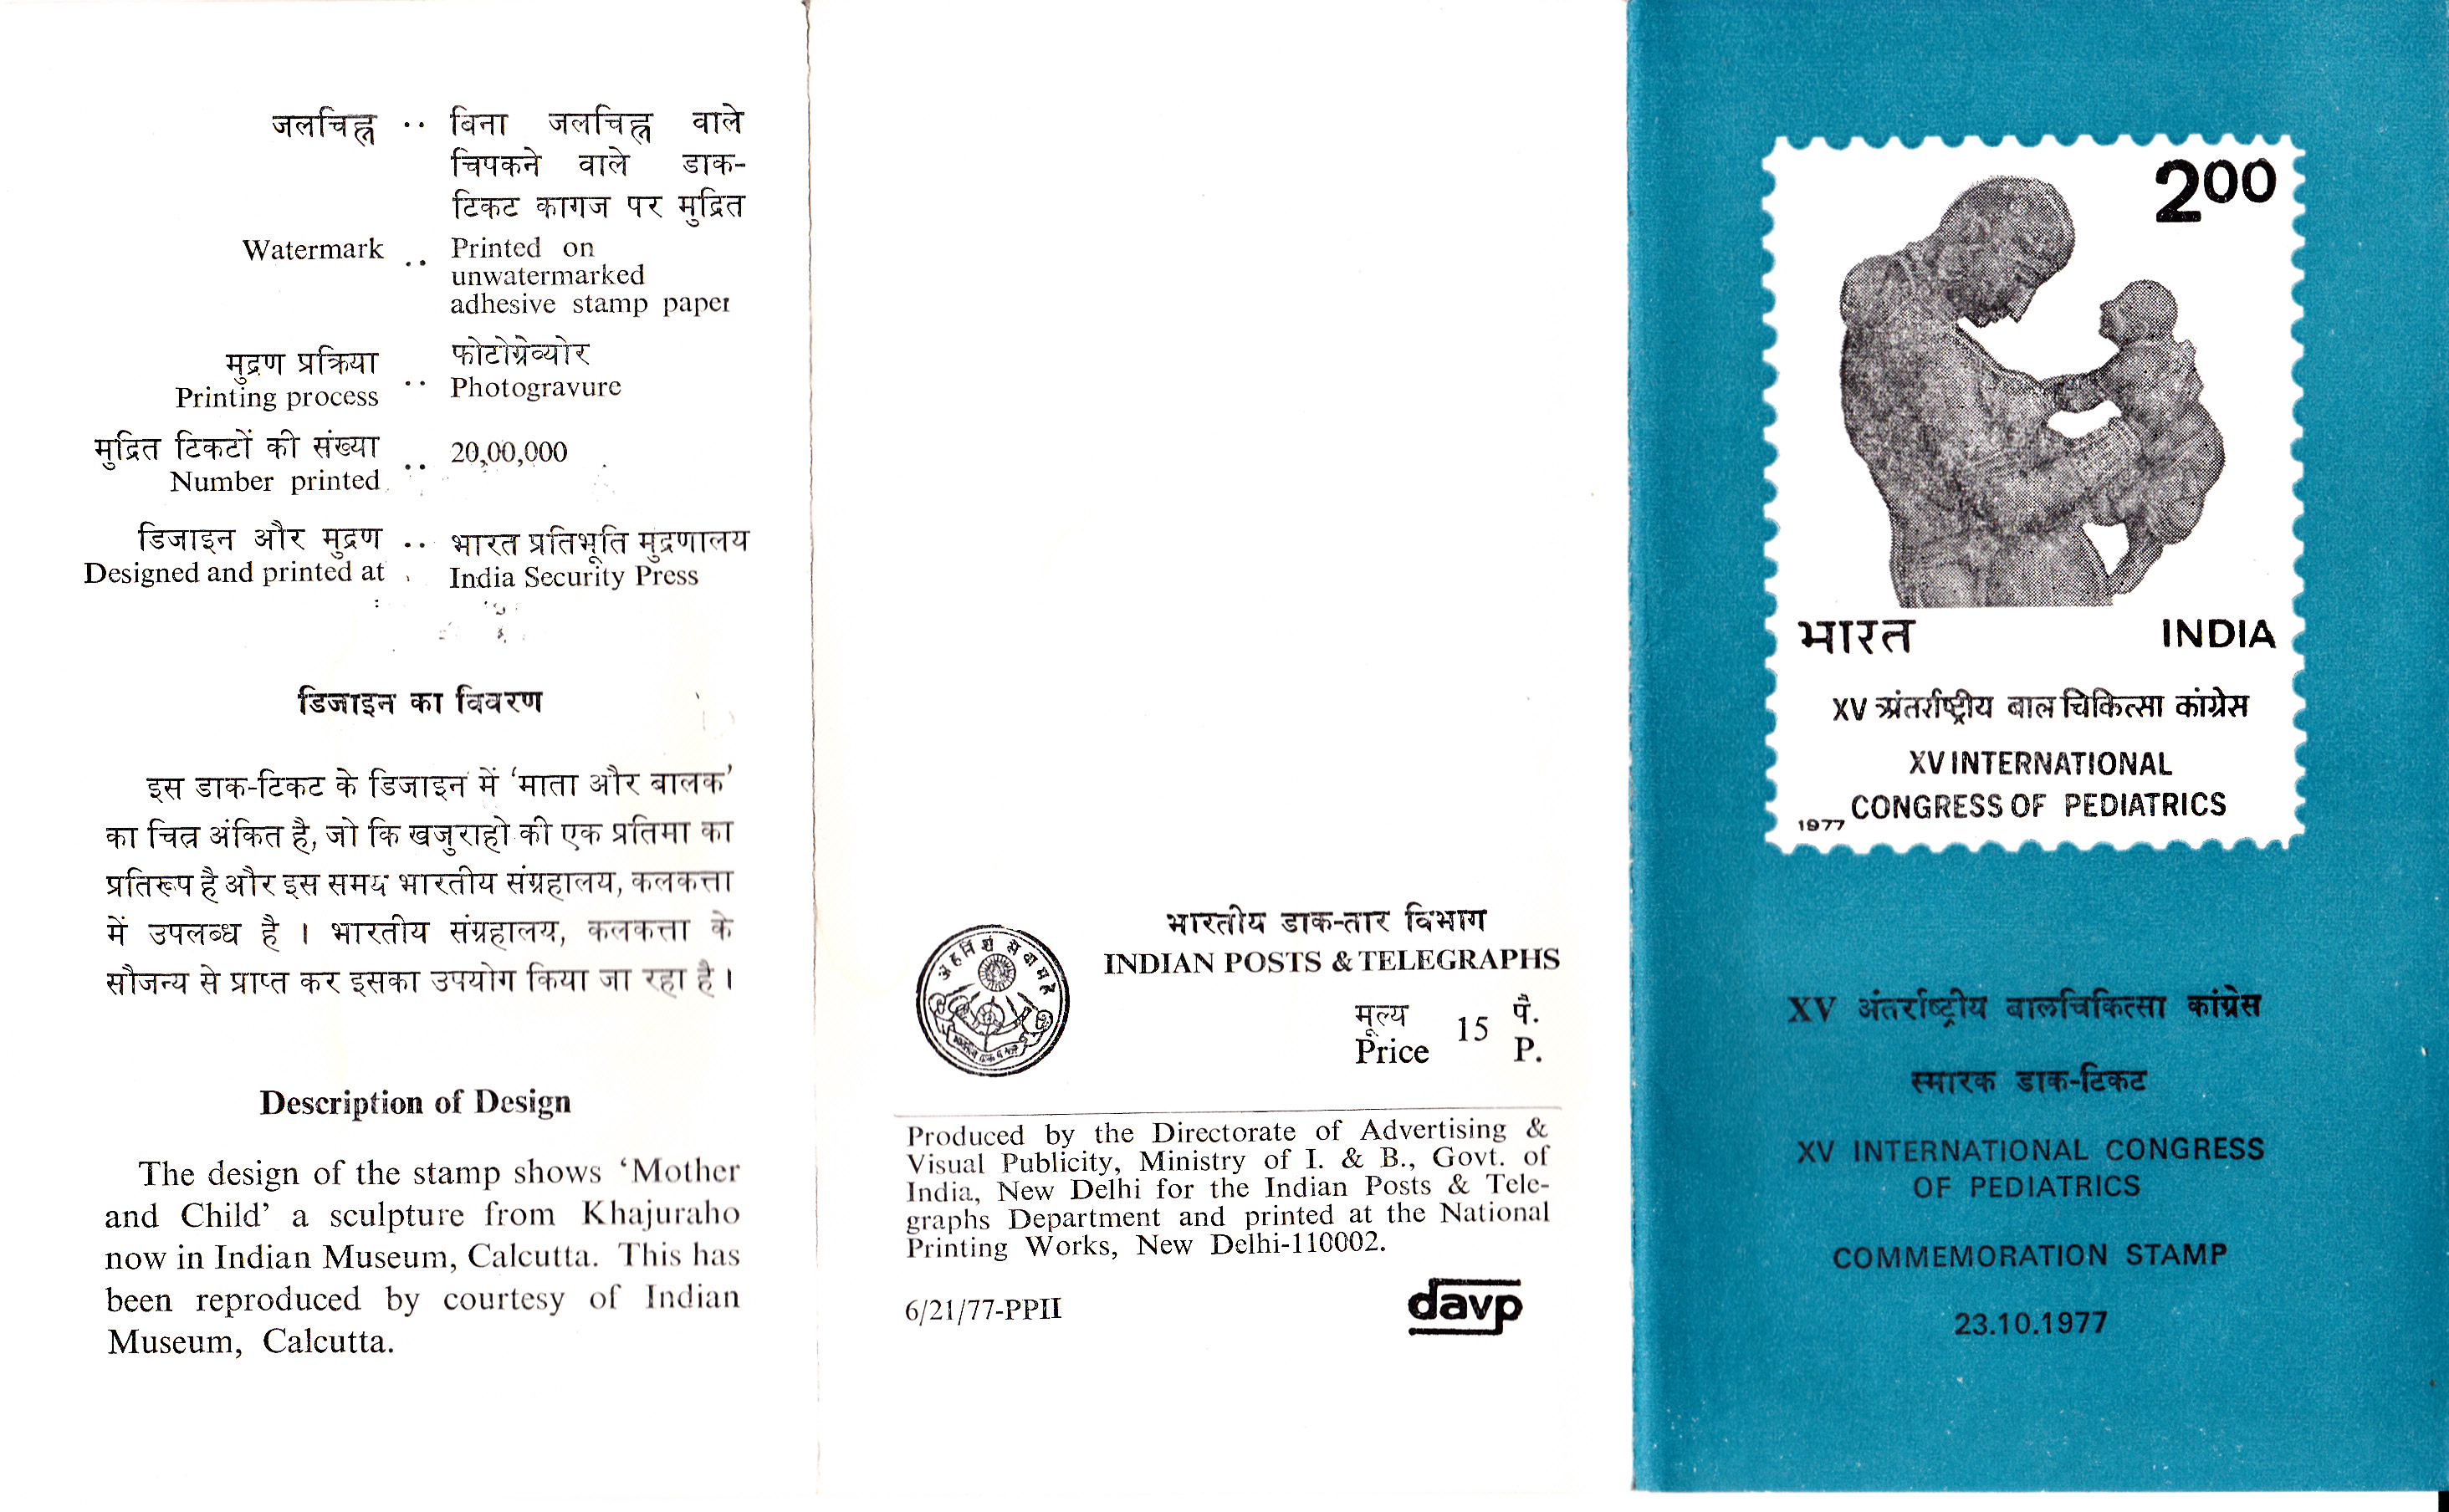 XV International Congress of Pediatrics Brochure 001